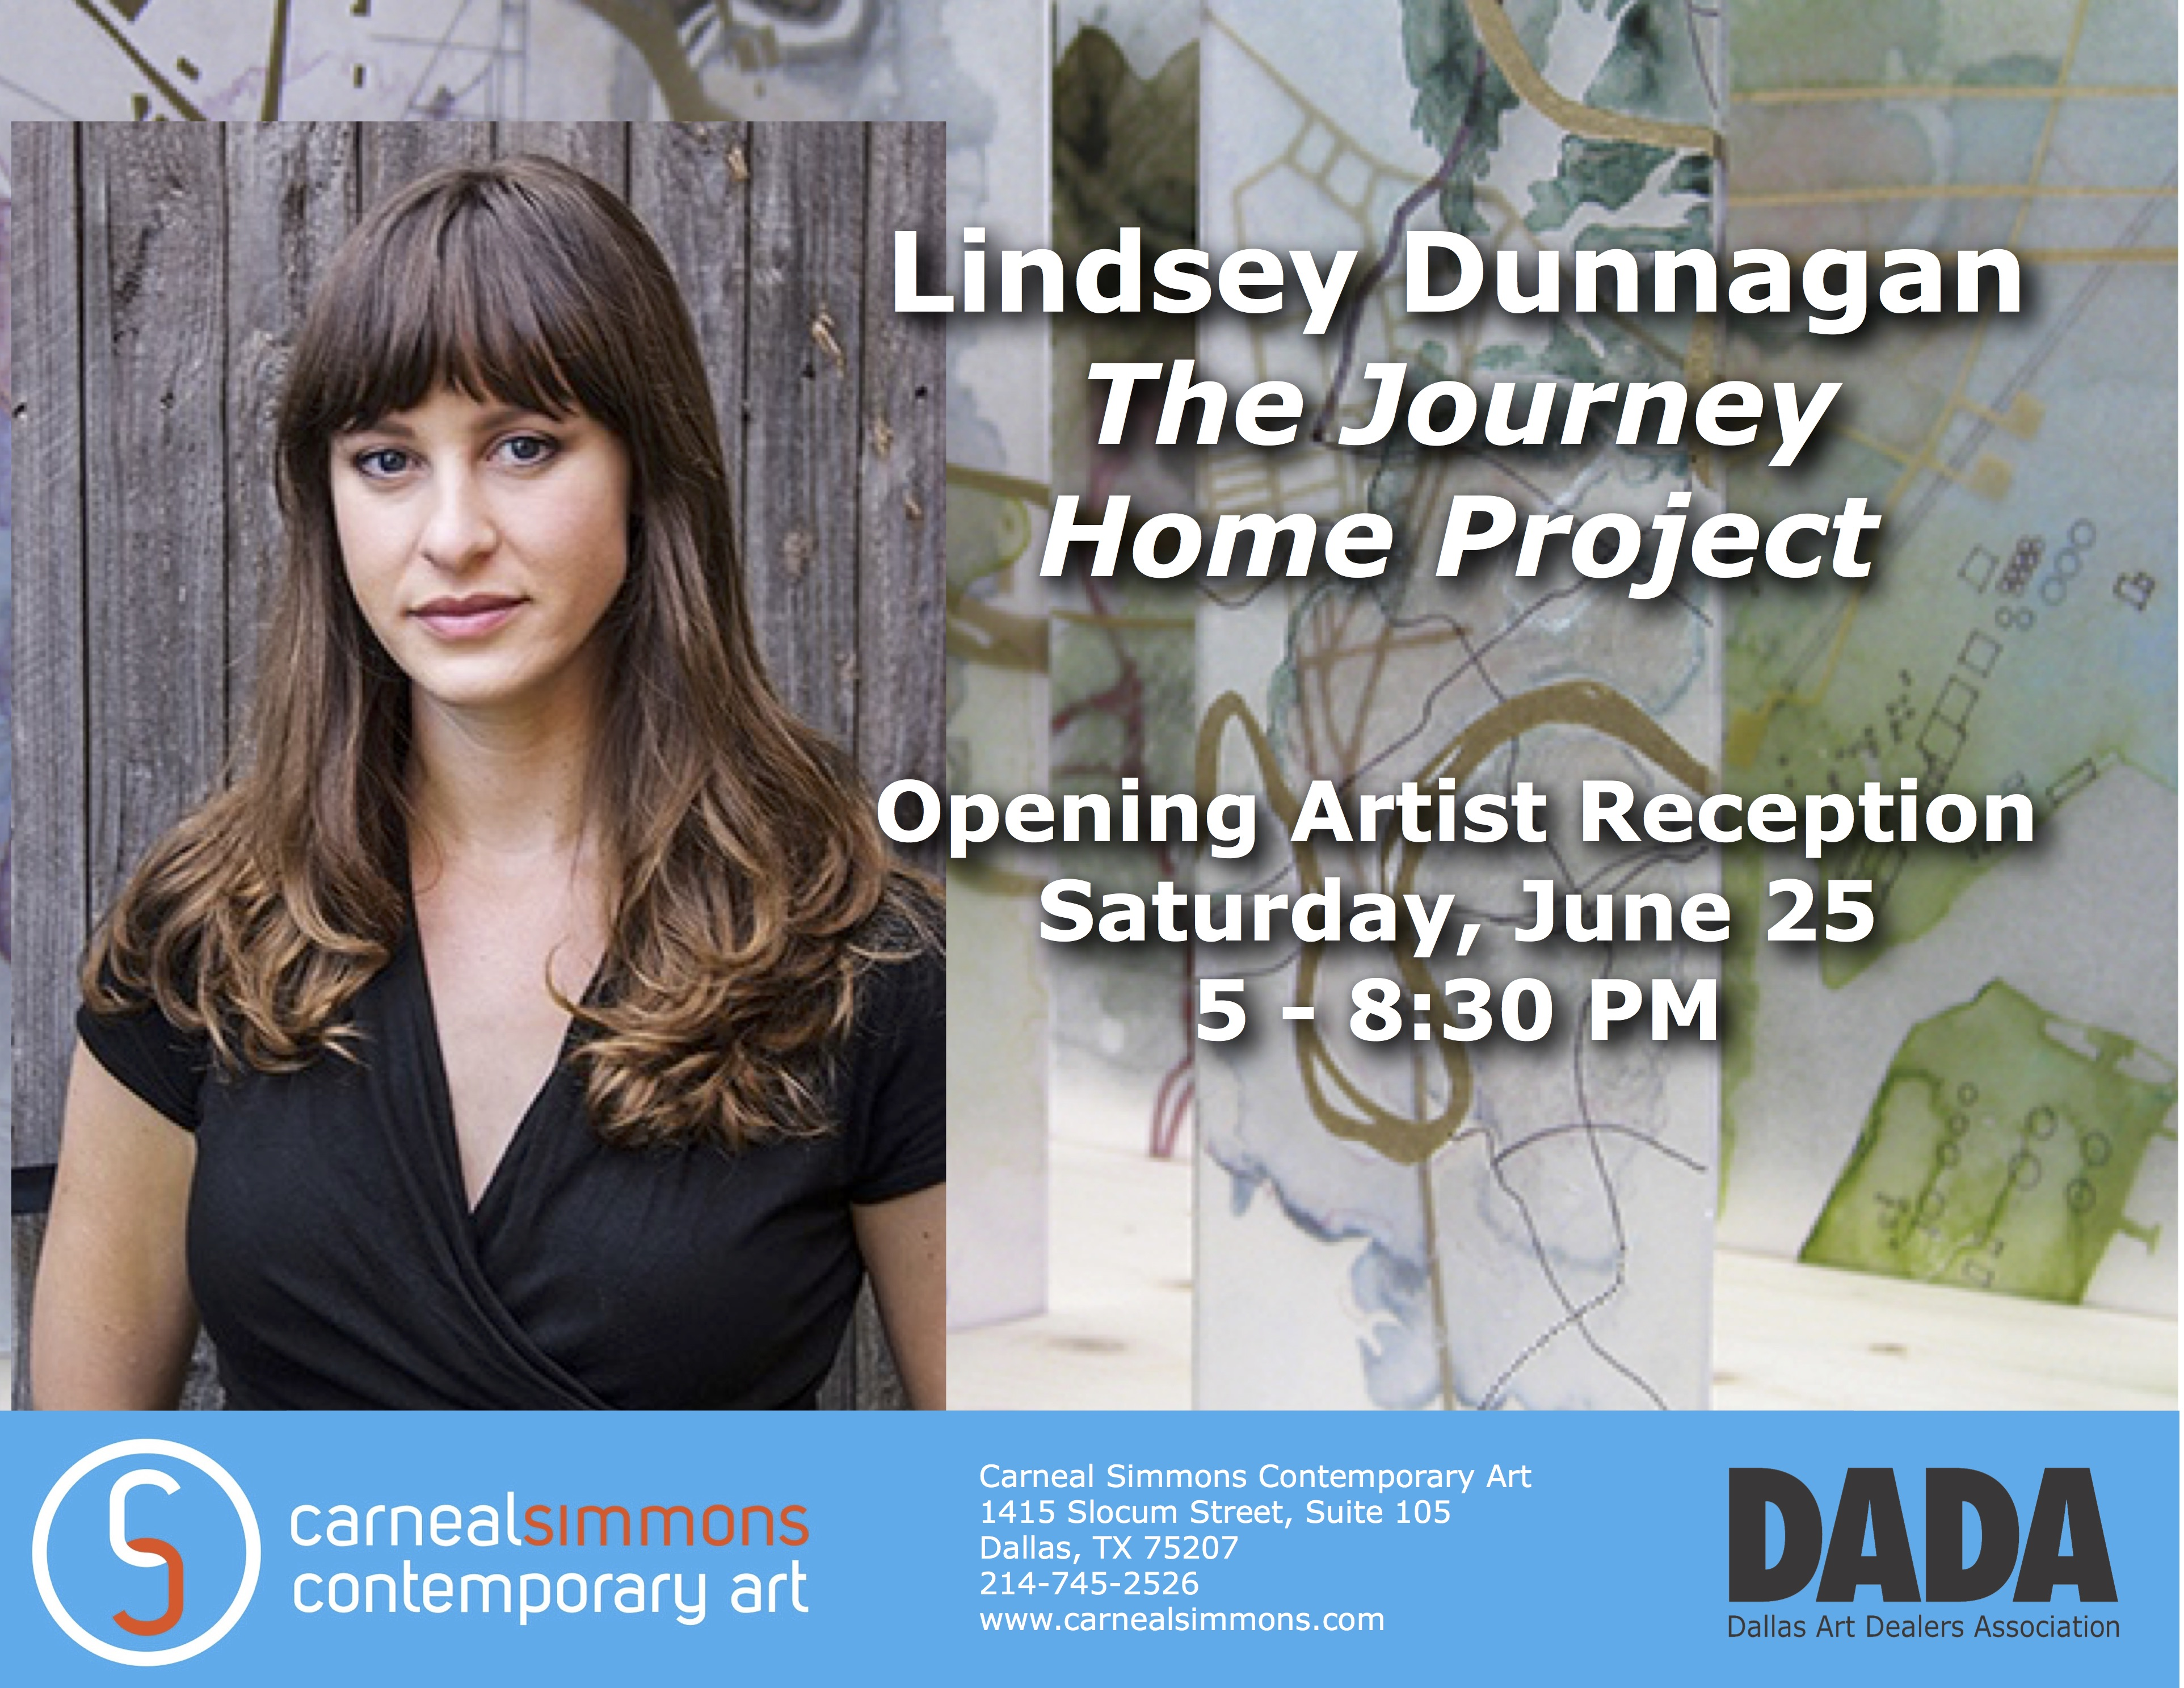 Opening Artist Reception June 25 from 5 - 8:30 PM